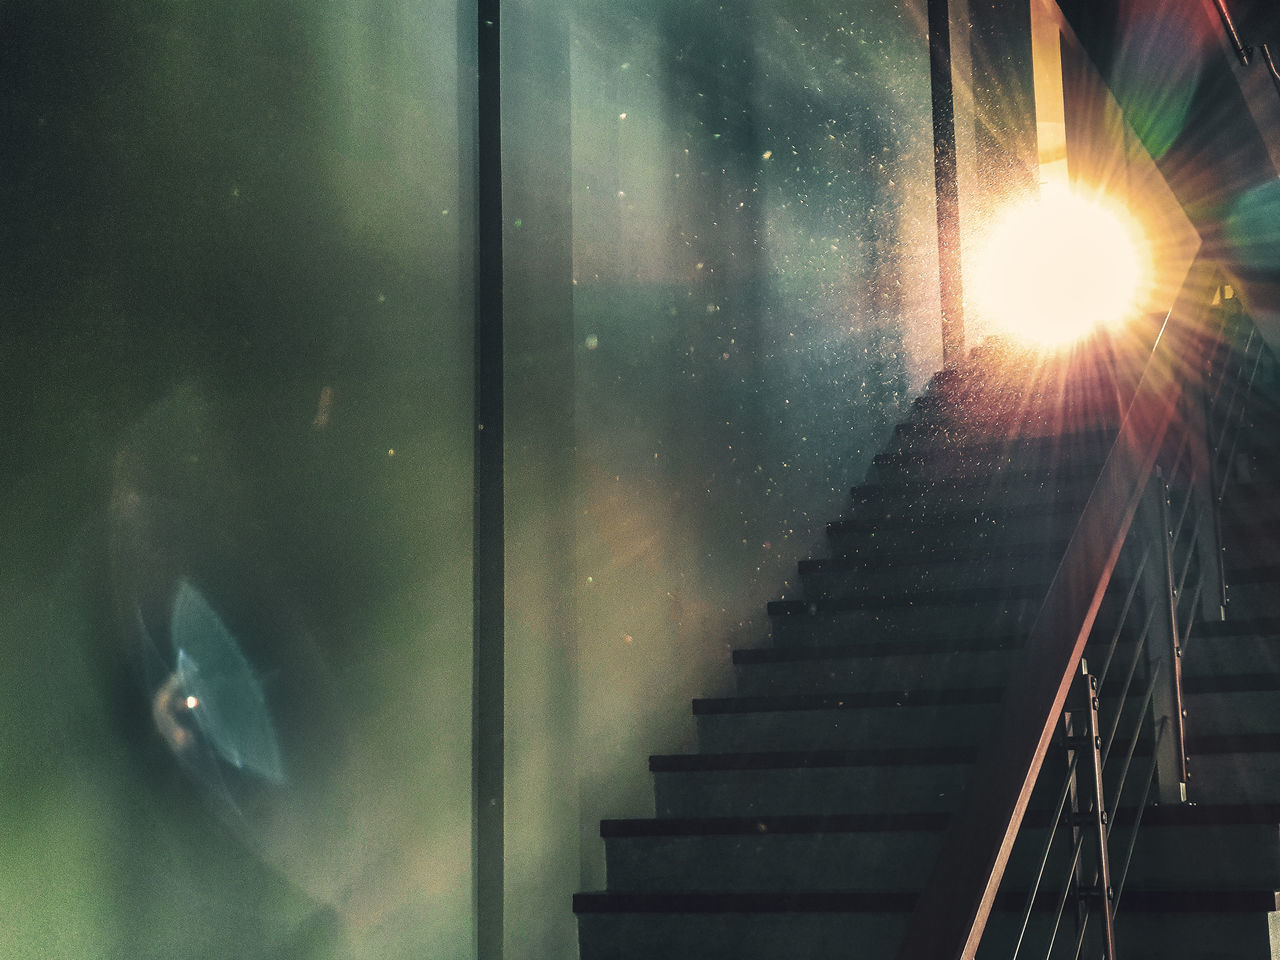 staircase, steps and staircases, architecture, railing, indoors, built structure, lens flare, real people, low angle view, glass - material, window, one person, illuminated, nature, sunlight, sunbeam, reflection, direction